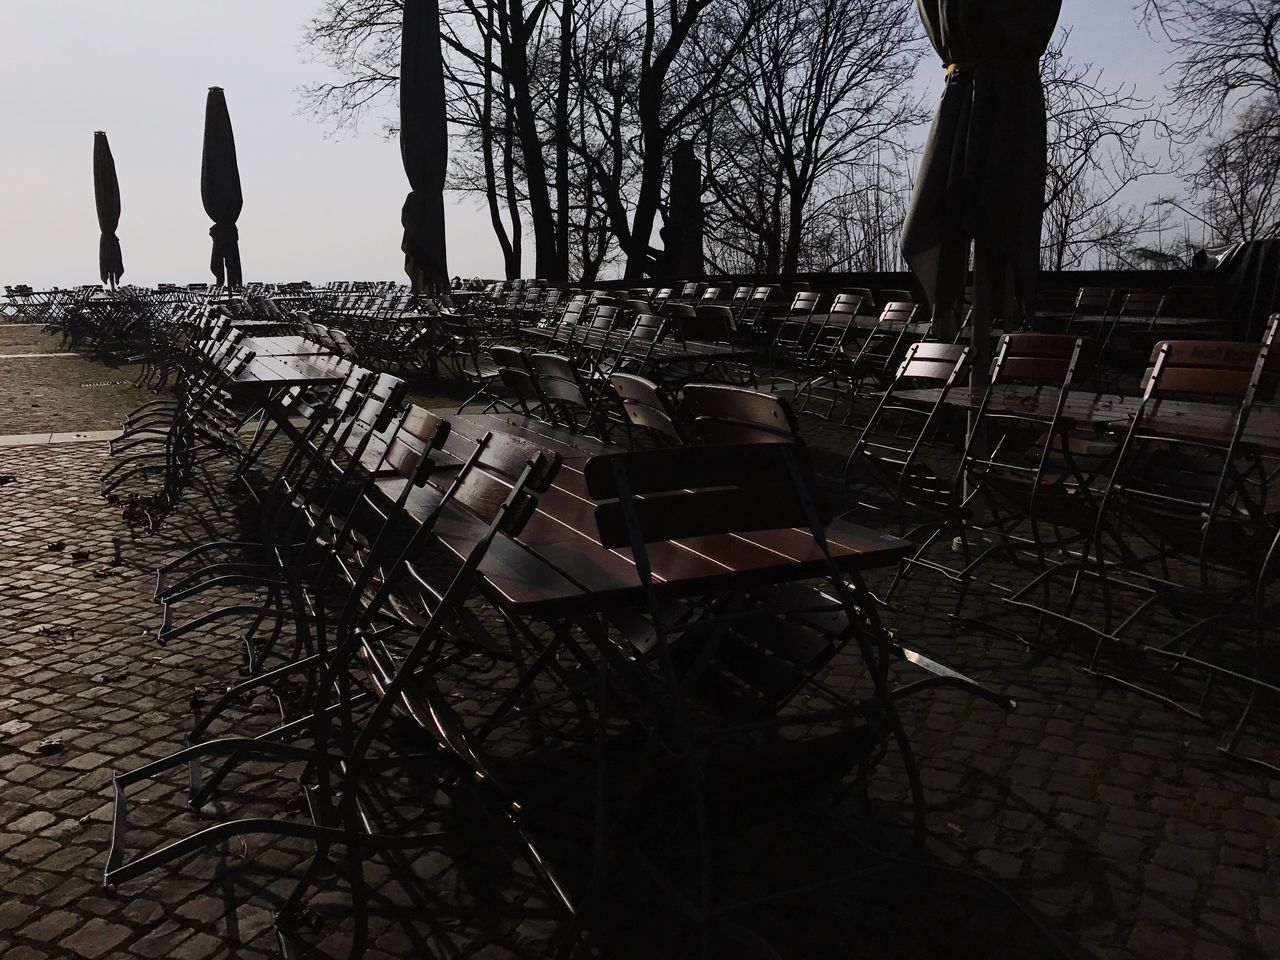 Biergarten Chair Tree Table Empty No People Outdoors Clear Sky Nature Sky Branch Day Closed Winter The City Light